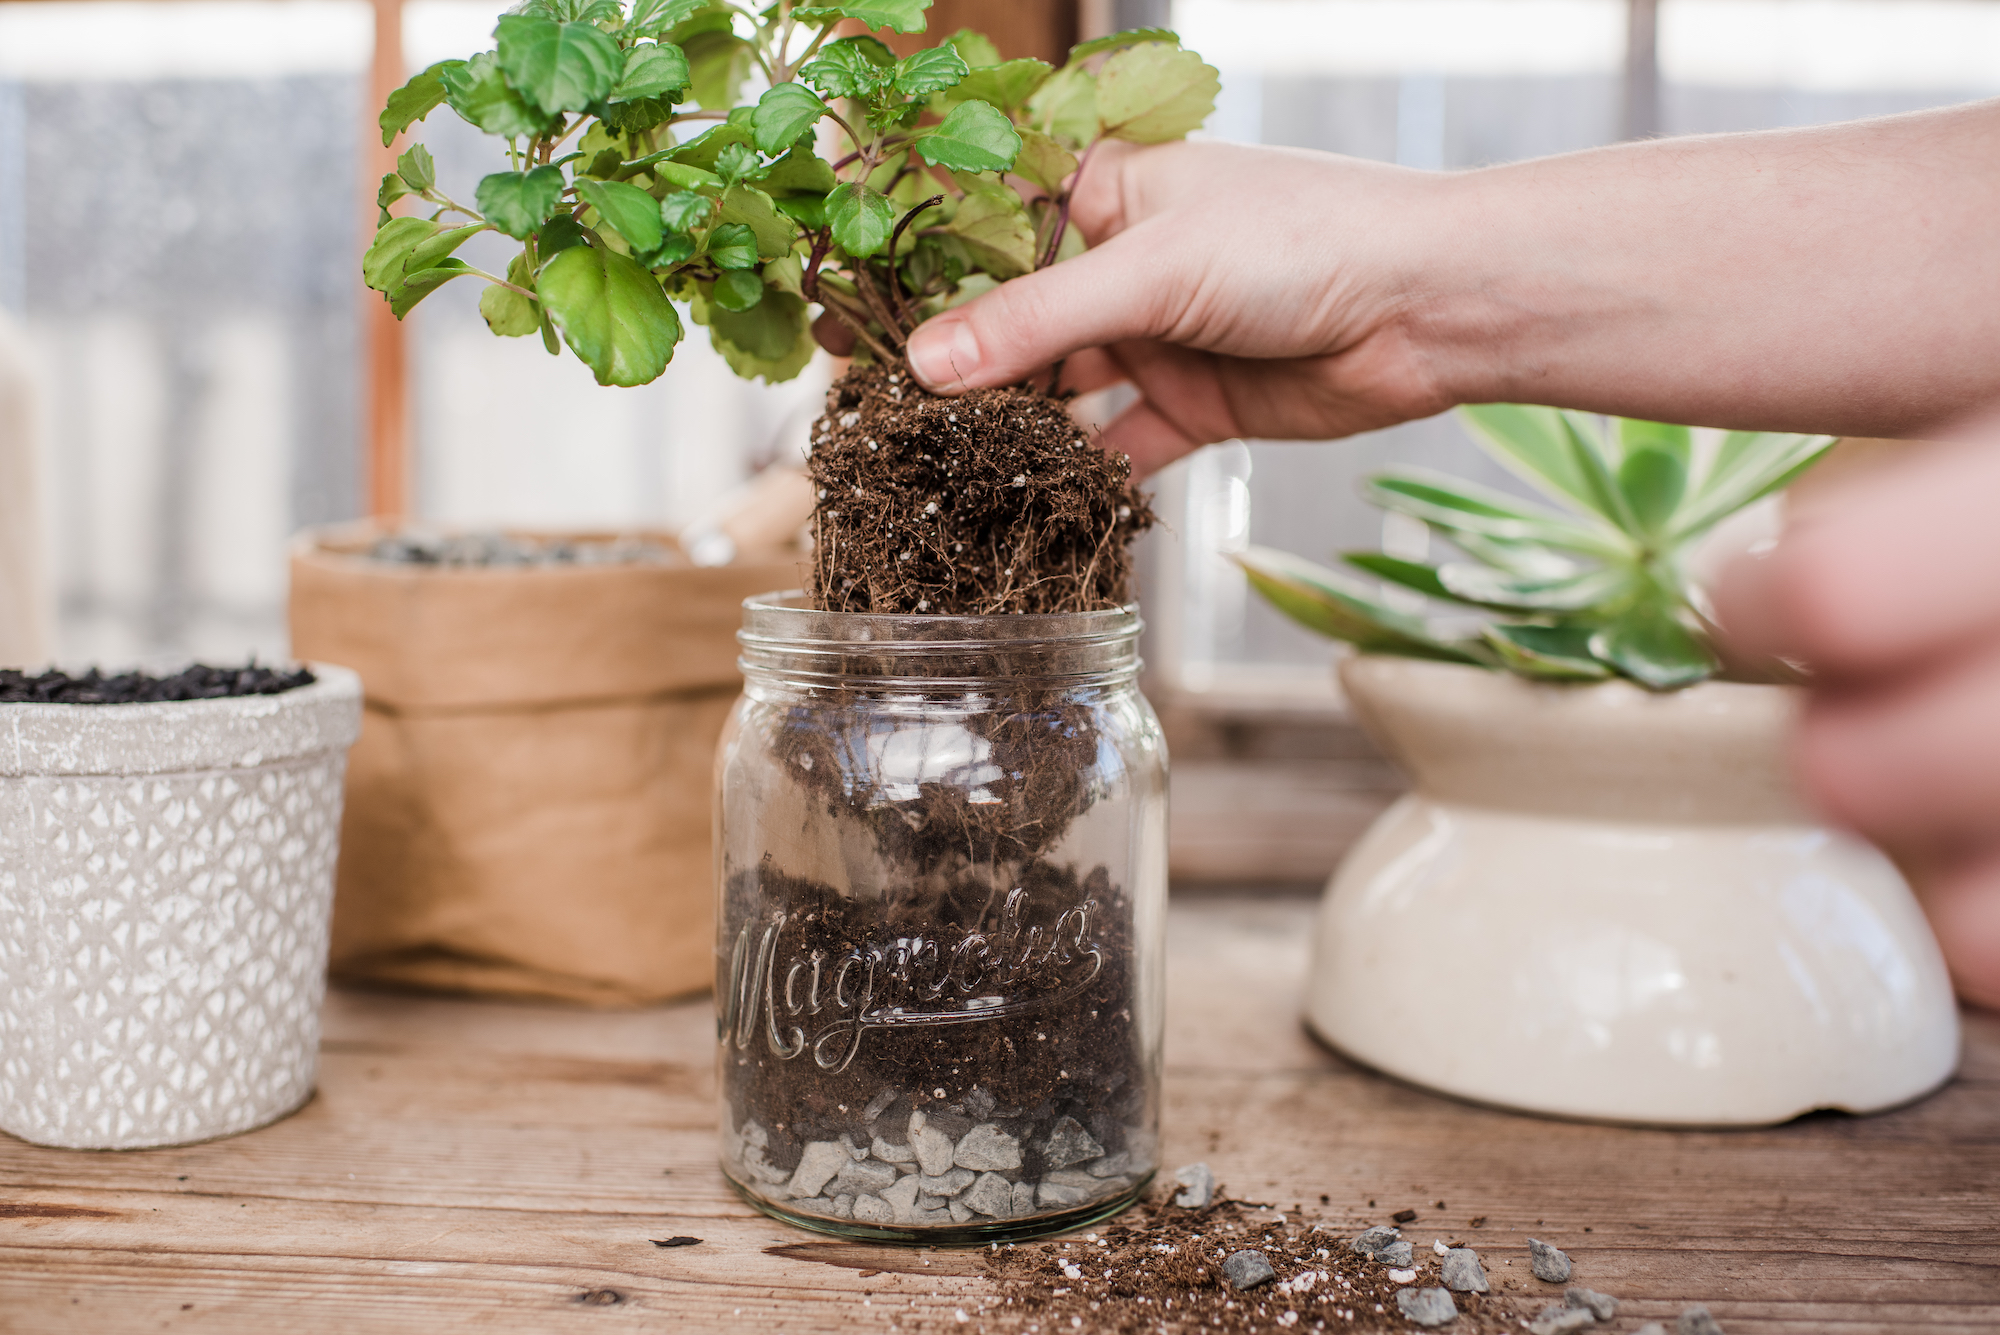 Joanna Gaines' Easy Technique to Pot a Plant Without Drainage Holes